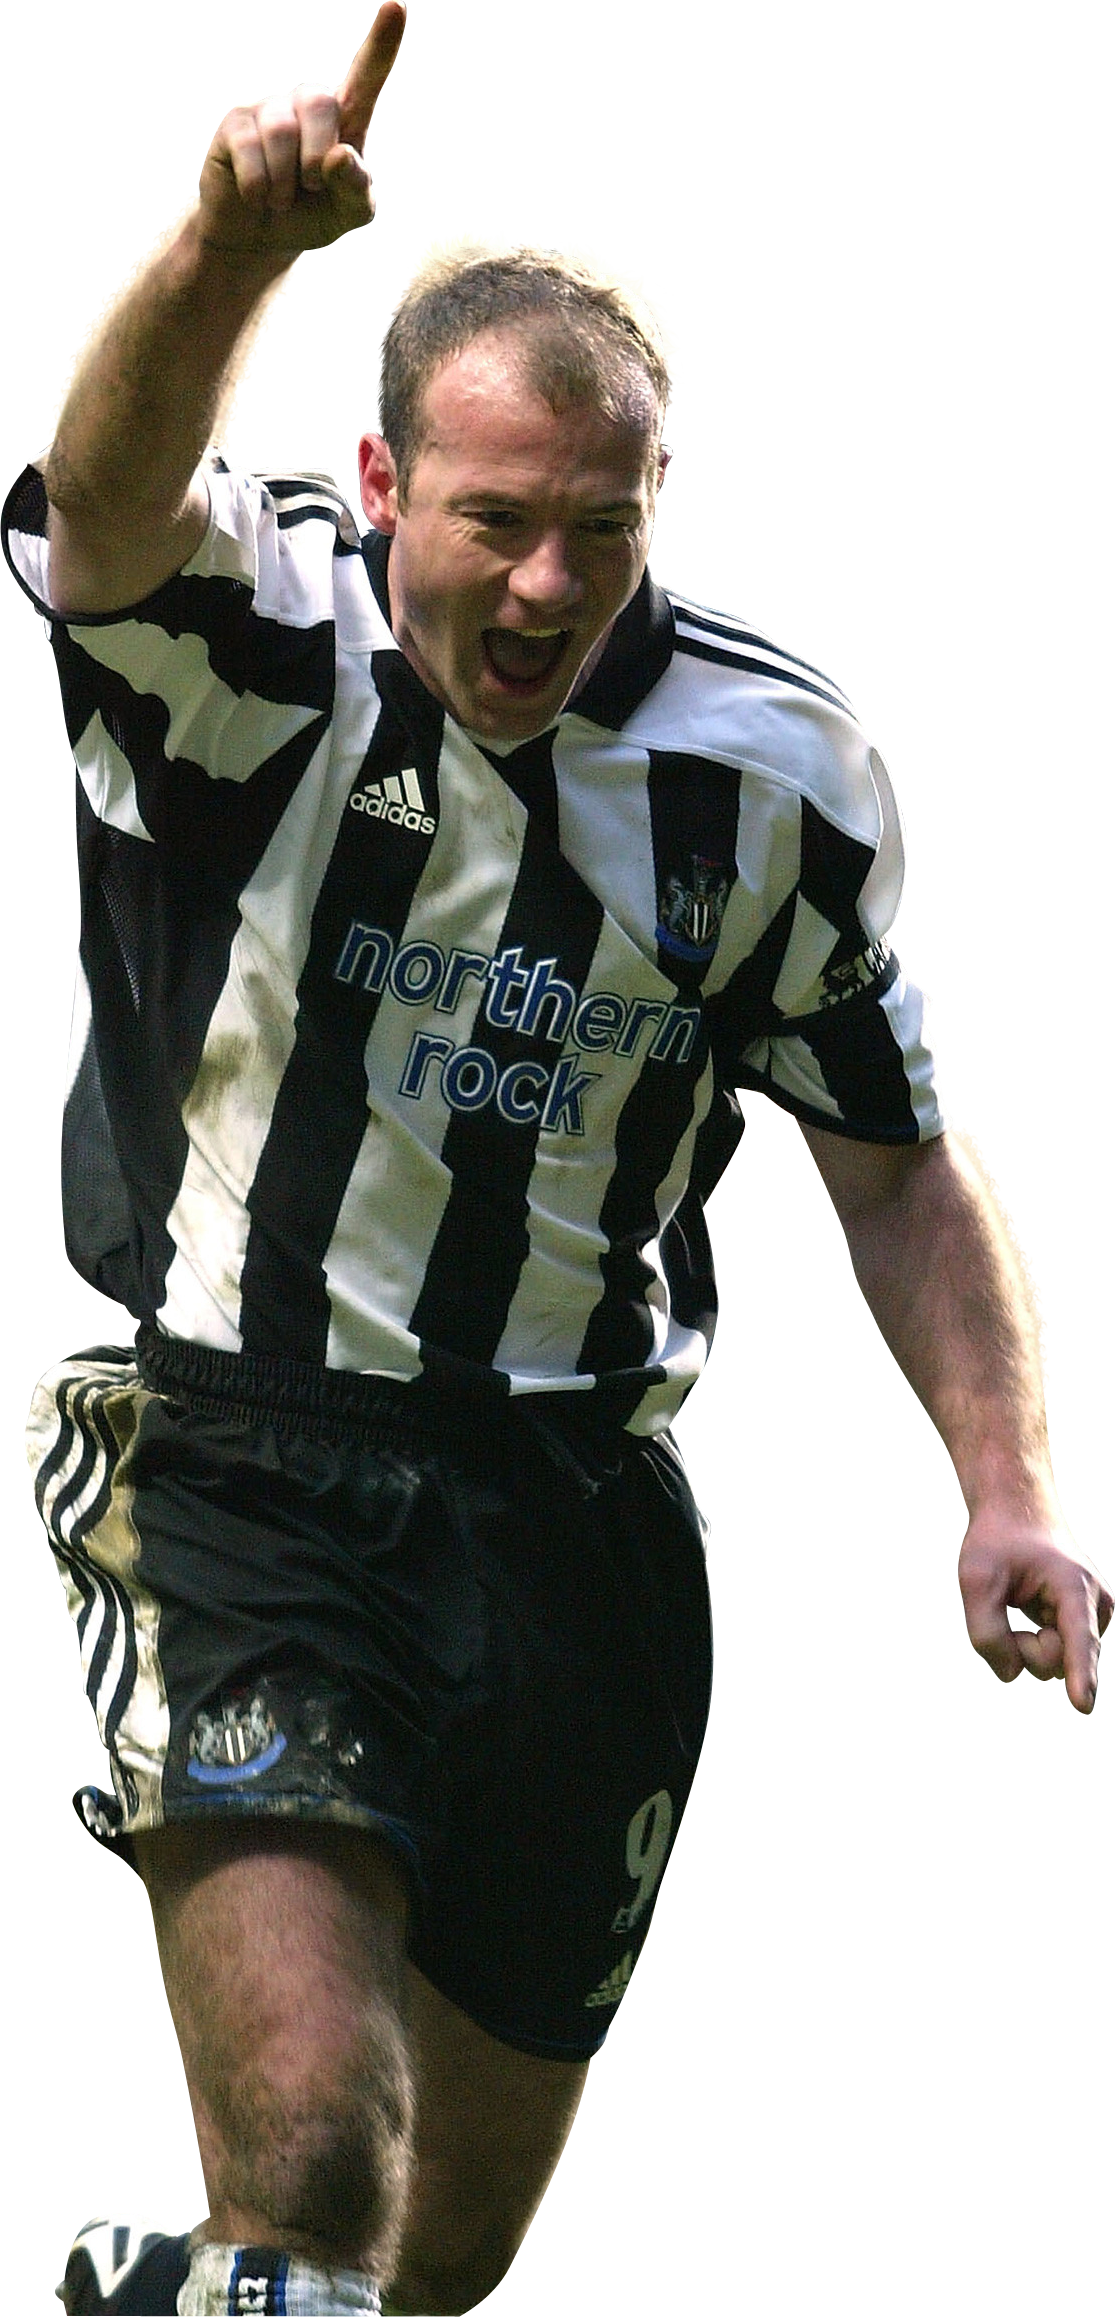 Alan Shearer render